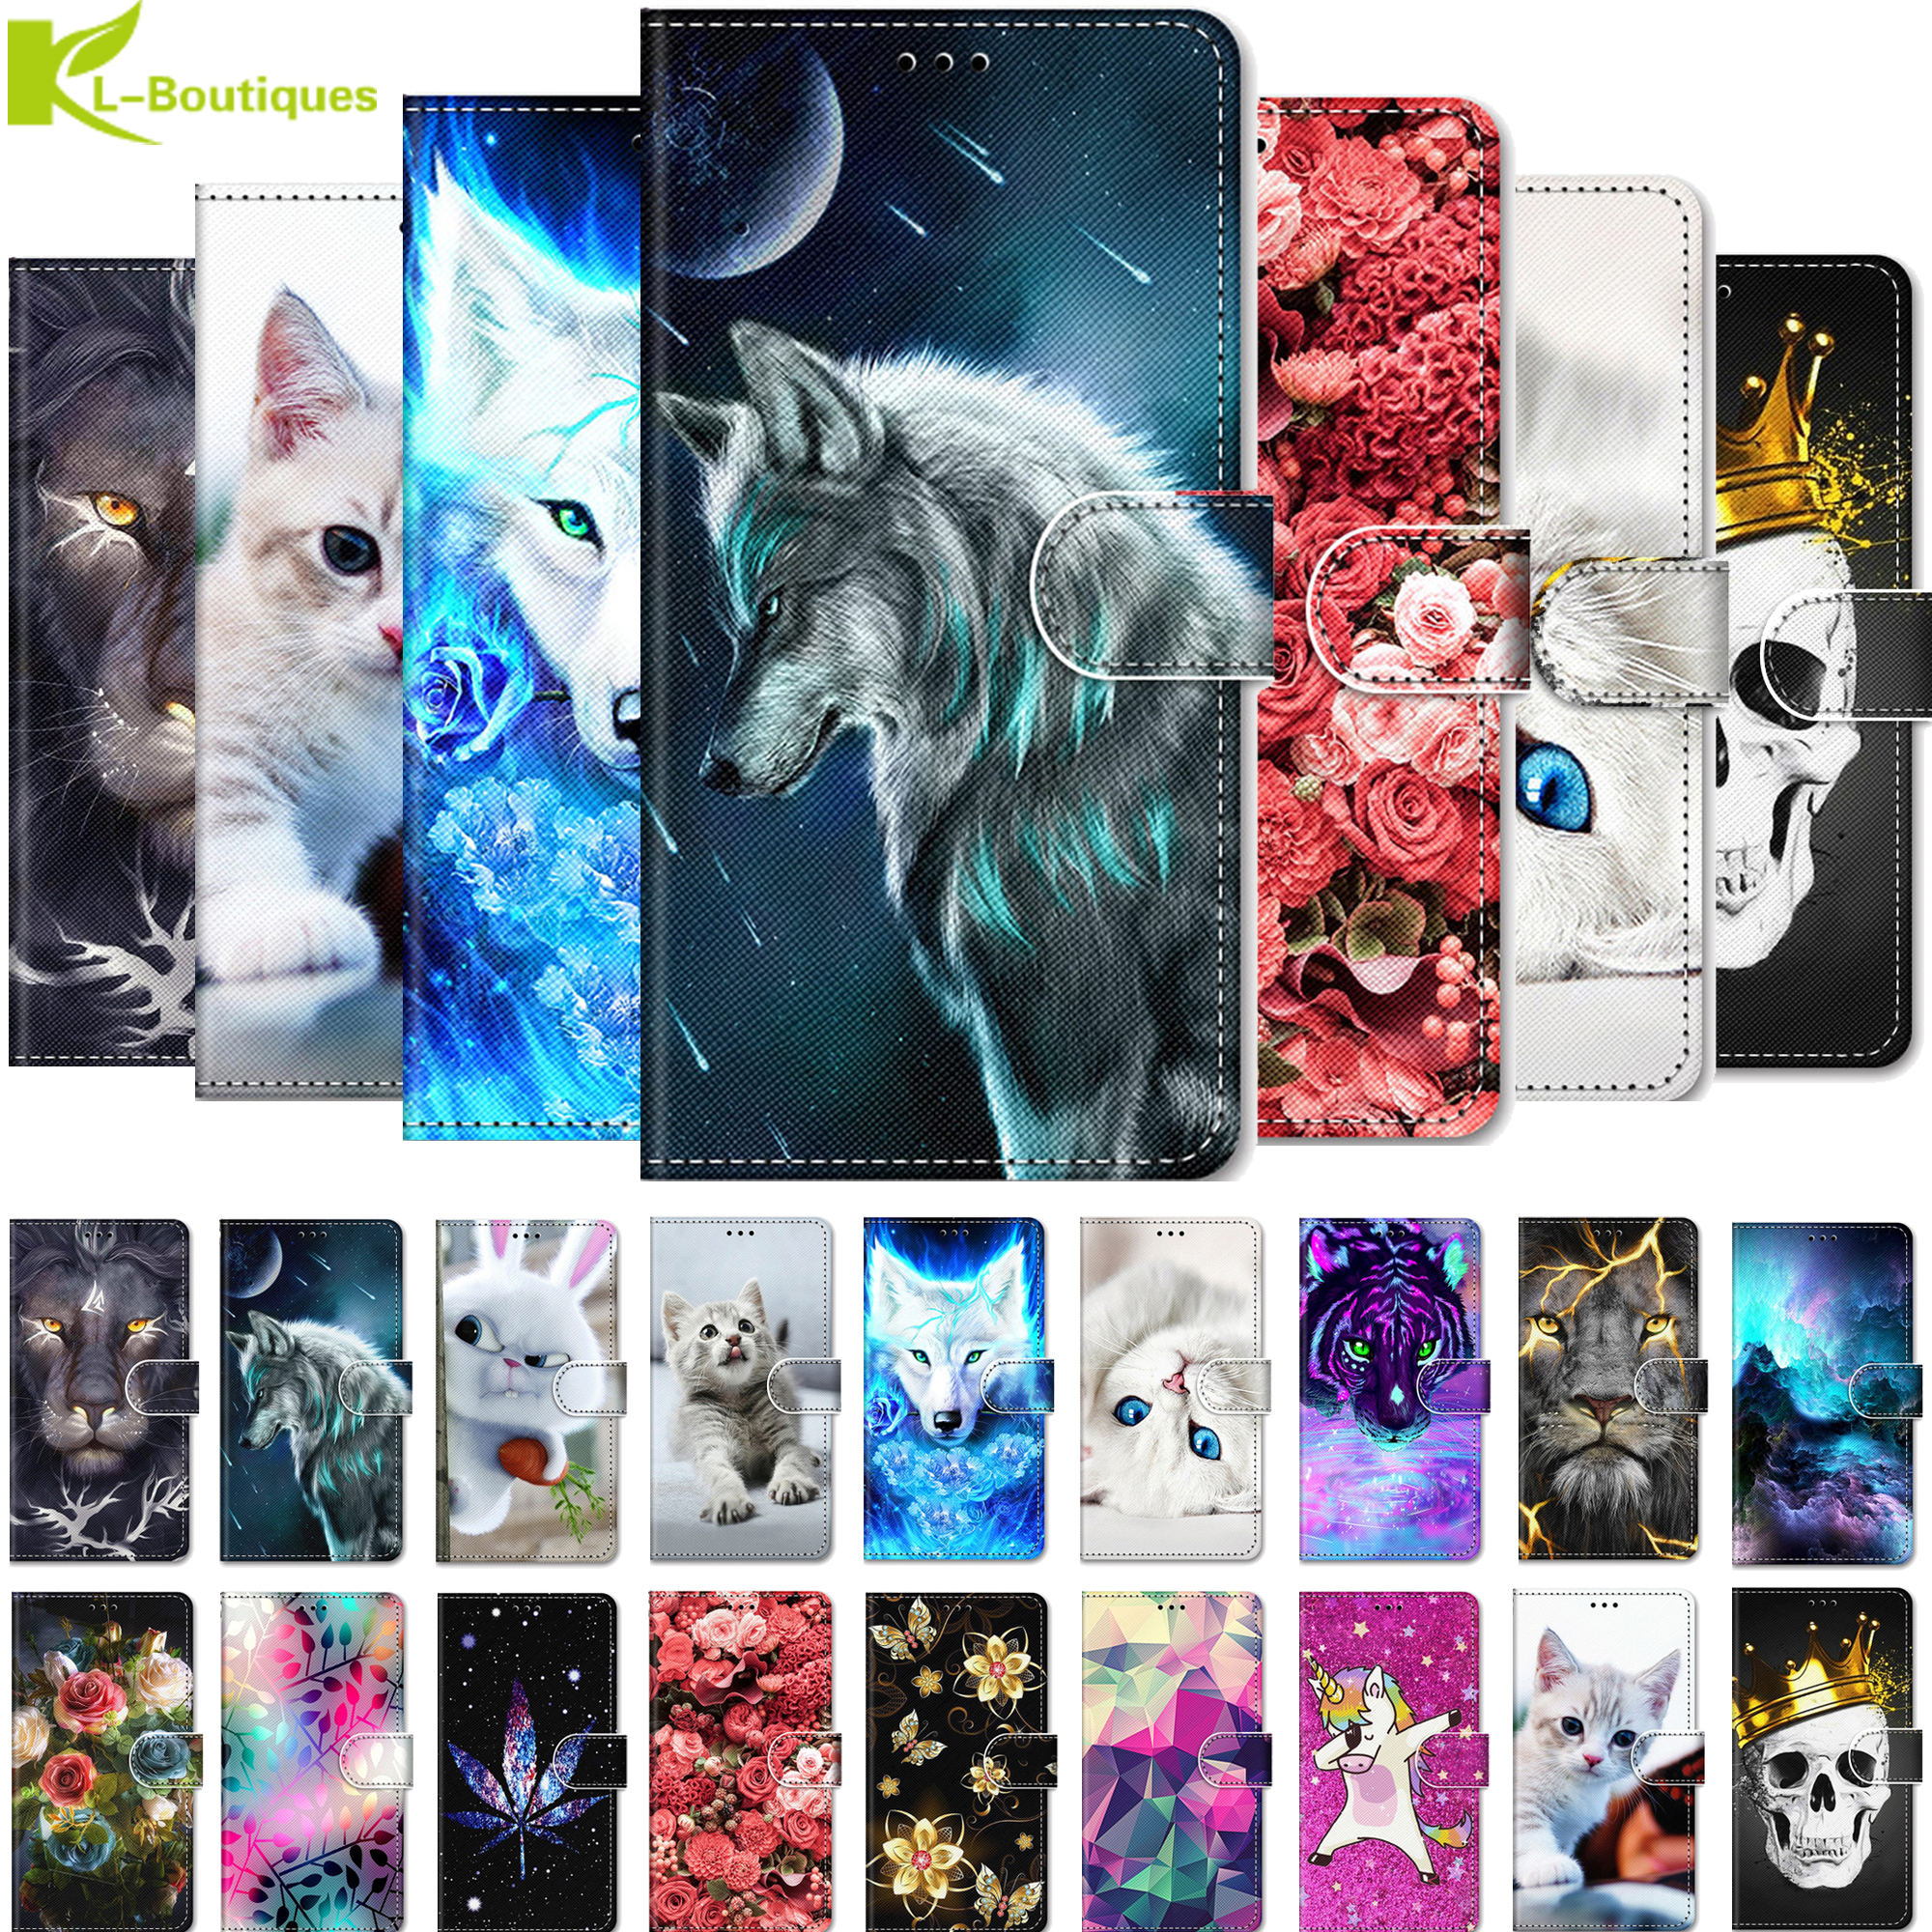 Capa for <font><b>Huawei</b></font> Y7 Y 7 2019 DUB-LX1 <font><b>Case</b></font> On sFor etui <font><b>Huawei</b></font> y72019 <font><b>Y5</b></font> <font><b>Y5</b></font> Lite Y6 Y7 <font><b>2018</b></font> 2019 Protect Mobile Phone <font><b>case</b></font> covers image